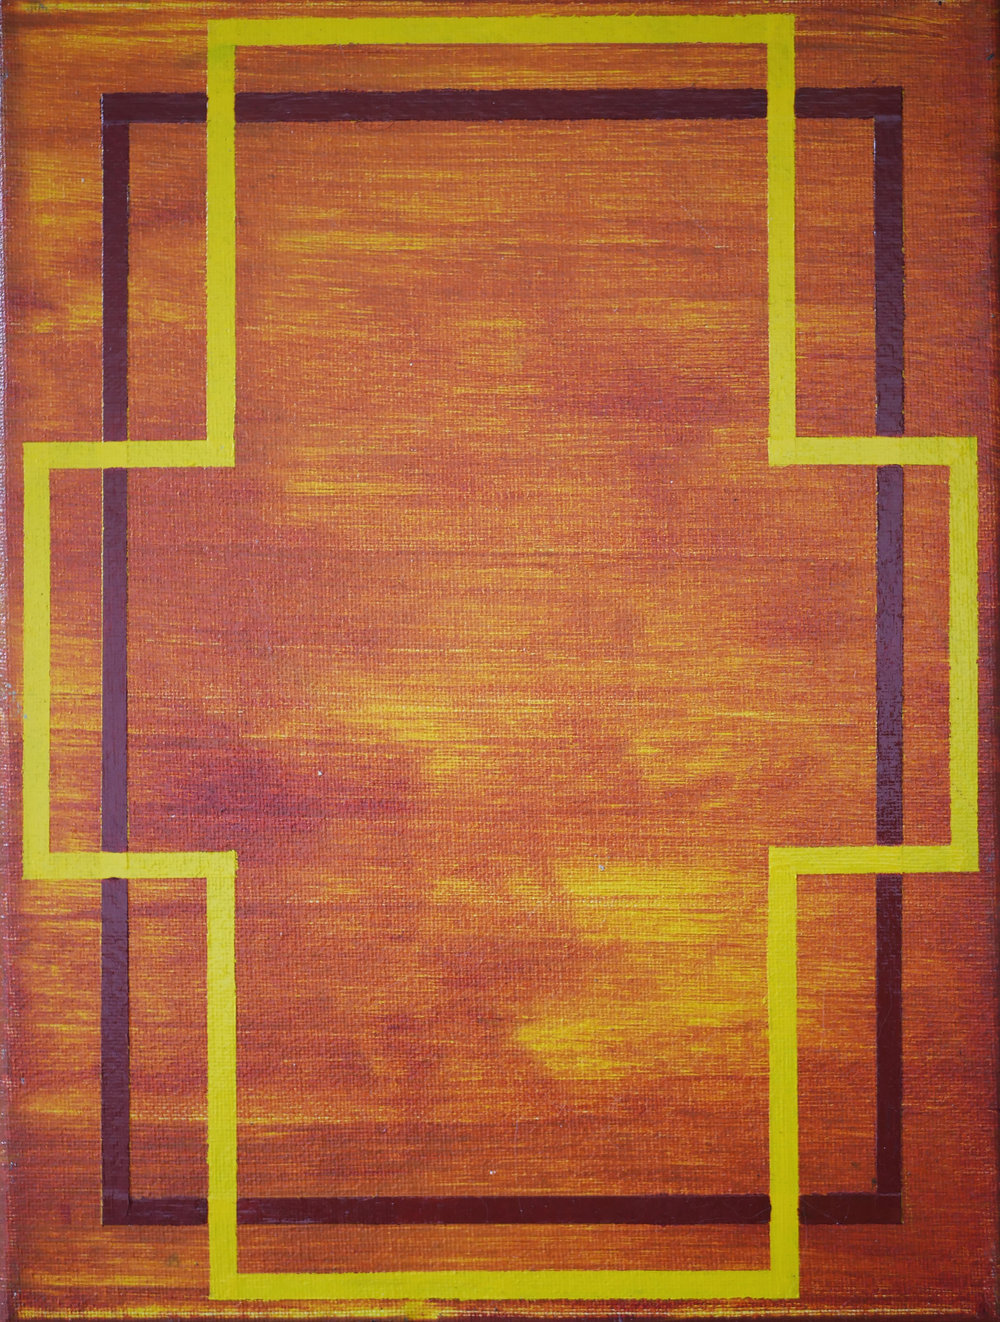 UNTITLED (Yellow Cross)   2013 Acrylic on canvas 14 x 11 in 35.56 x 27.9 cm